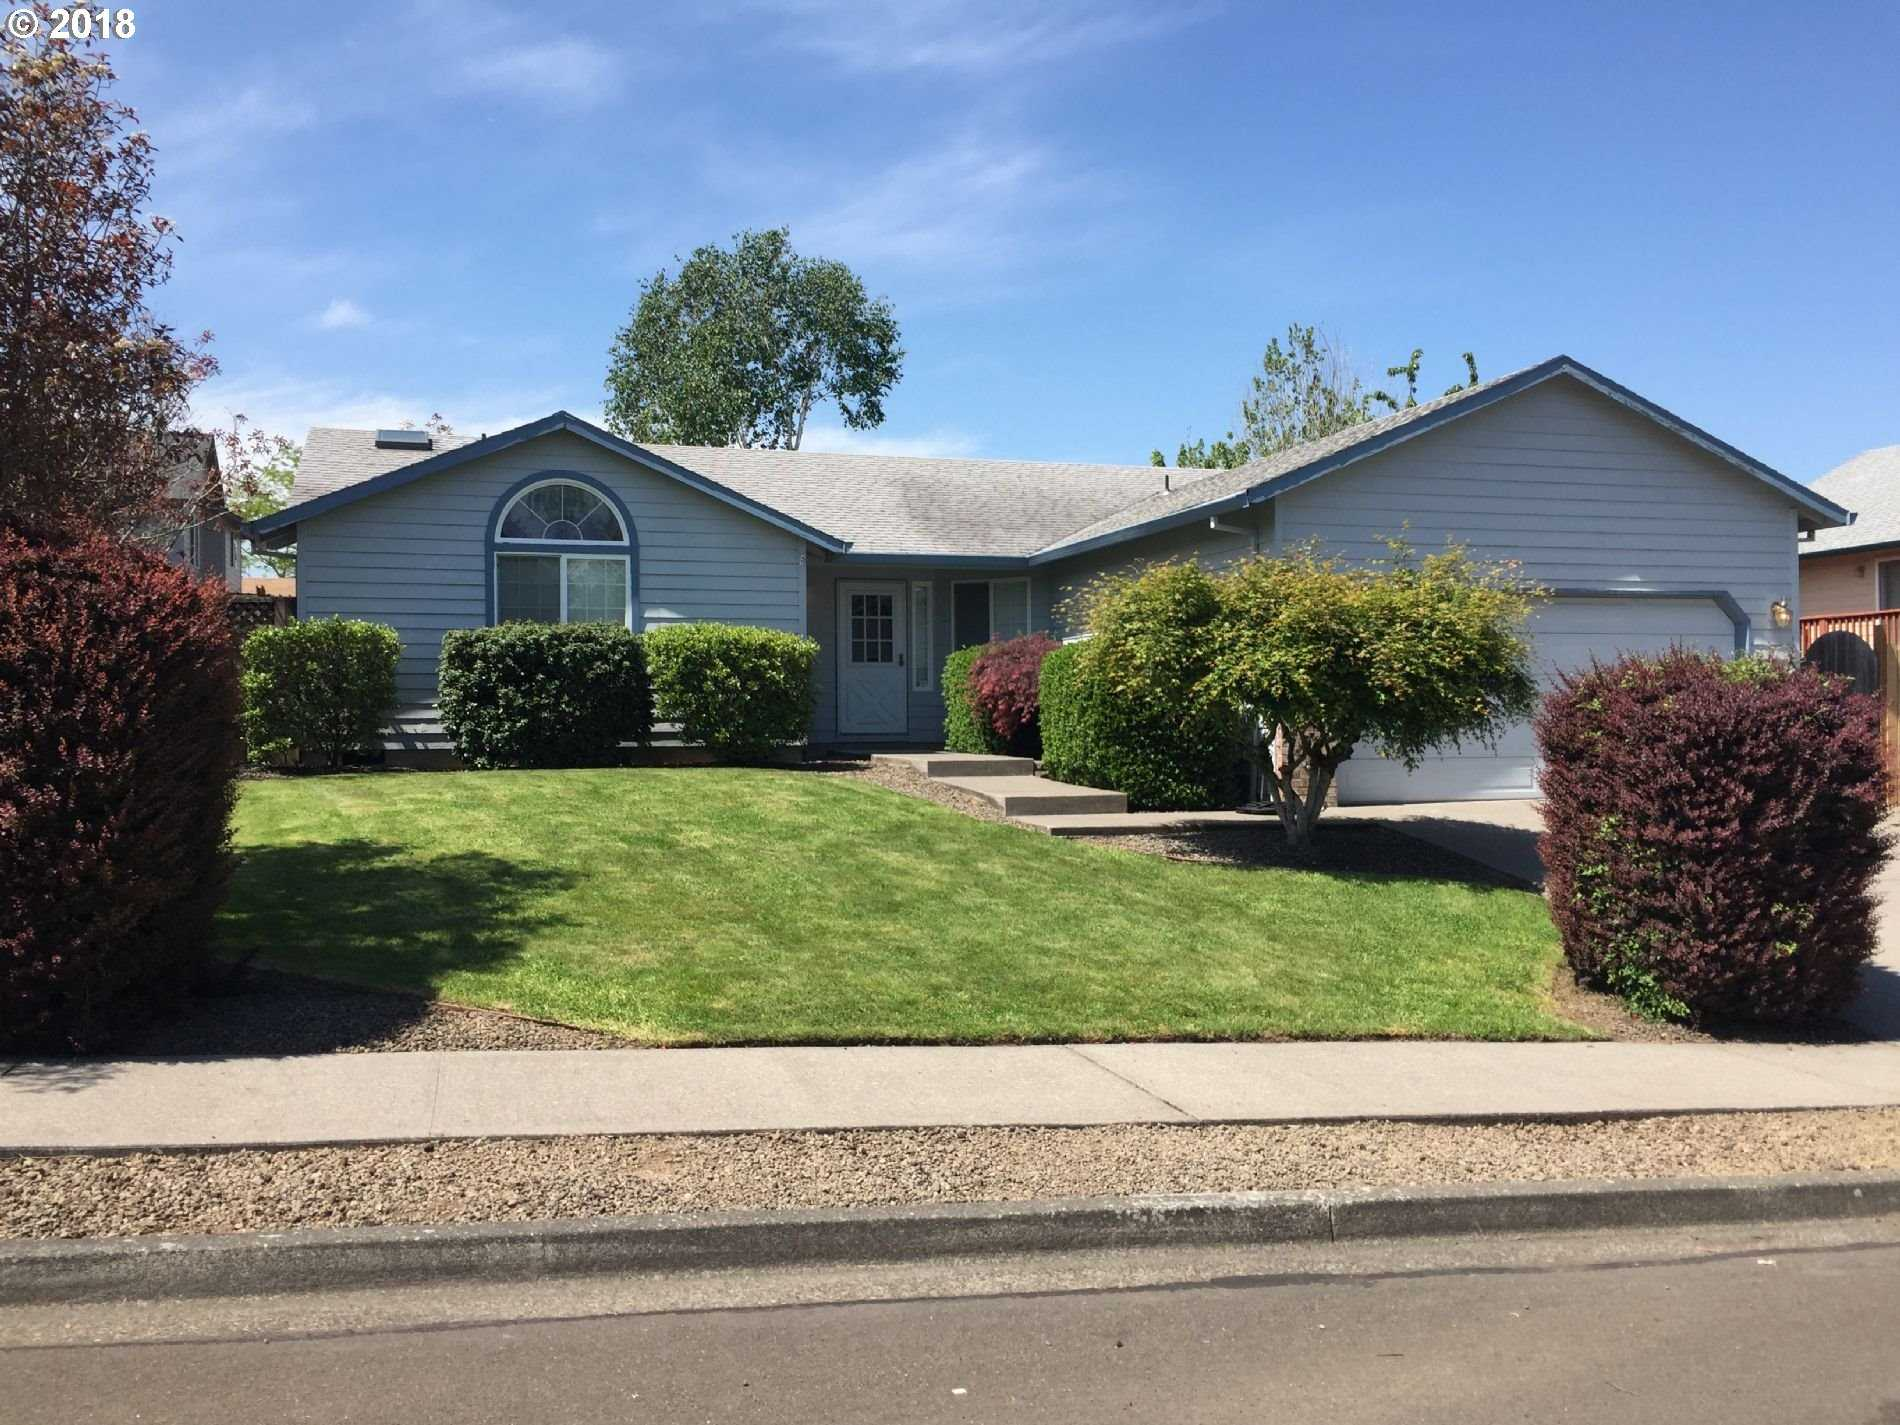 $344,500 - 3Br/2Ba -  for Sale in Troutdale